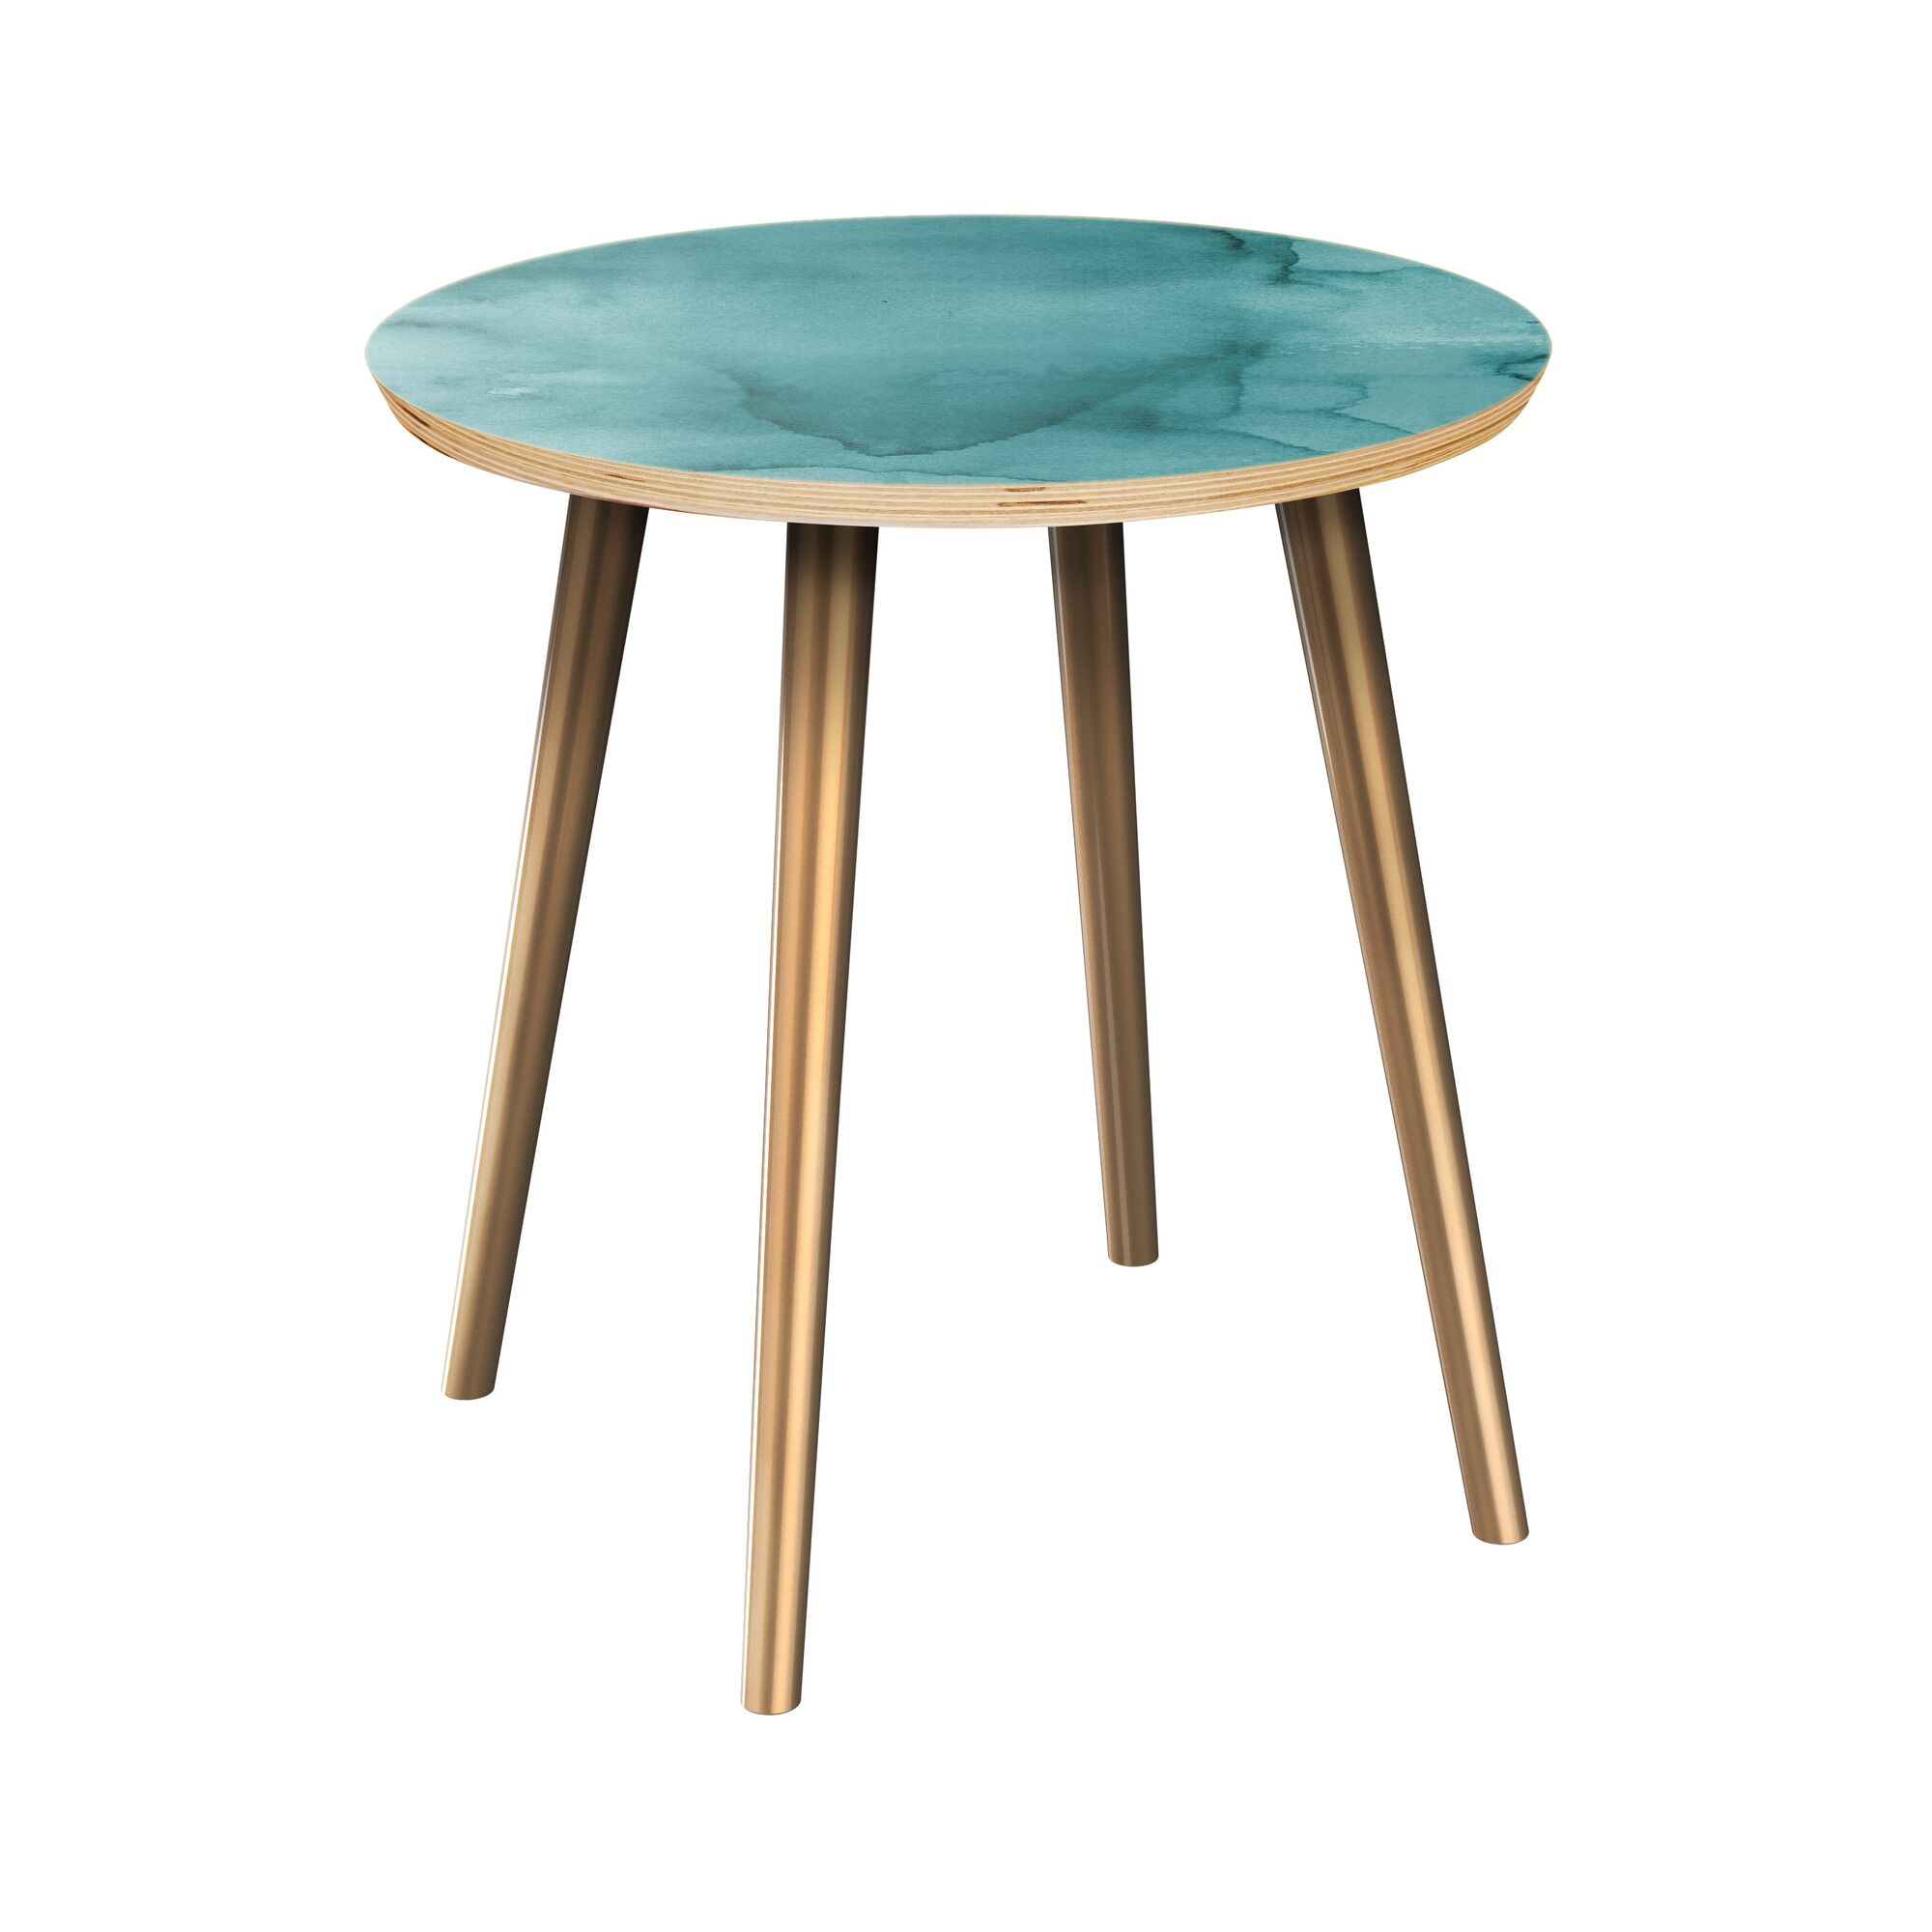 Rasnick End Table Table Top Boarder Color: Natural, Table Base Color: Brass, Table Top Color: Turquoise